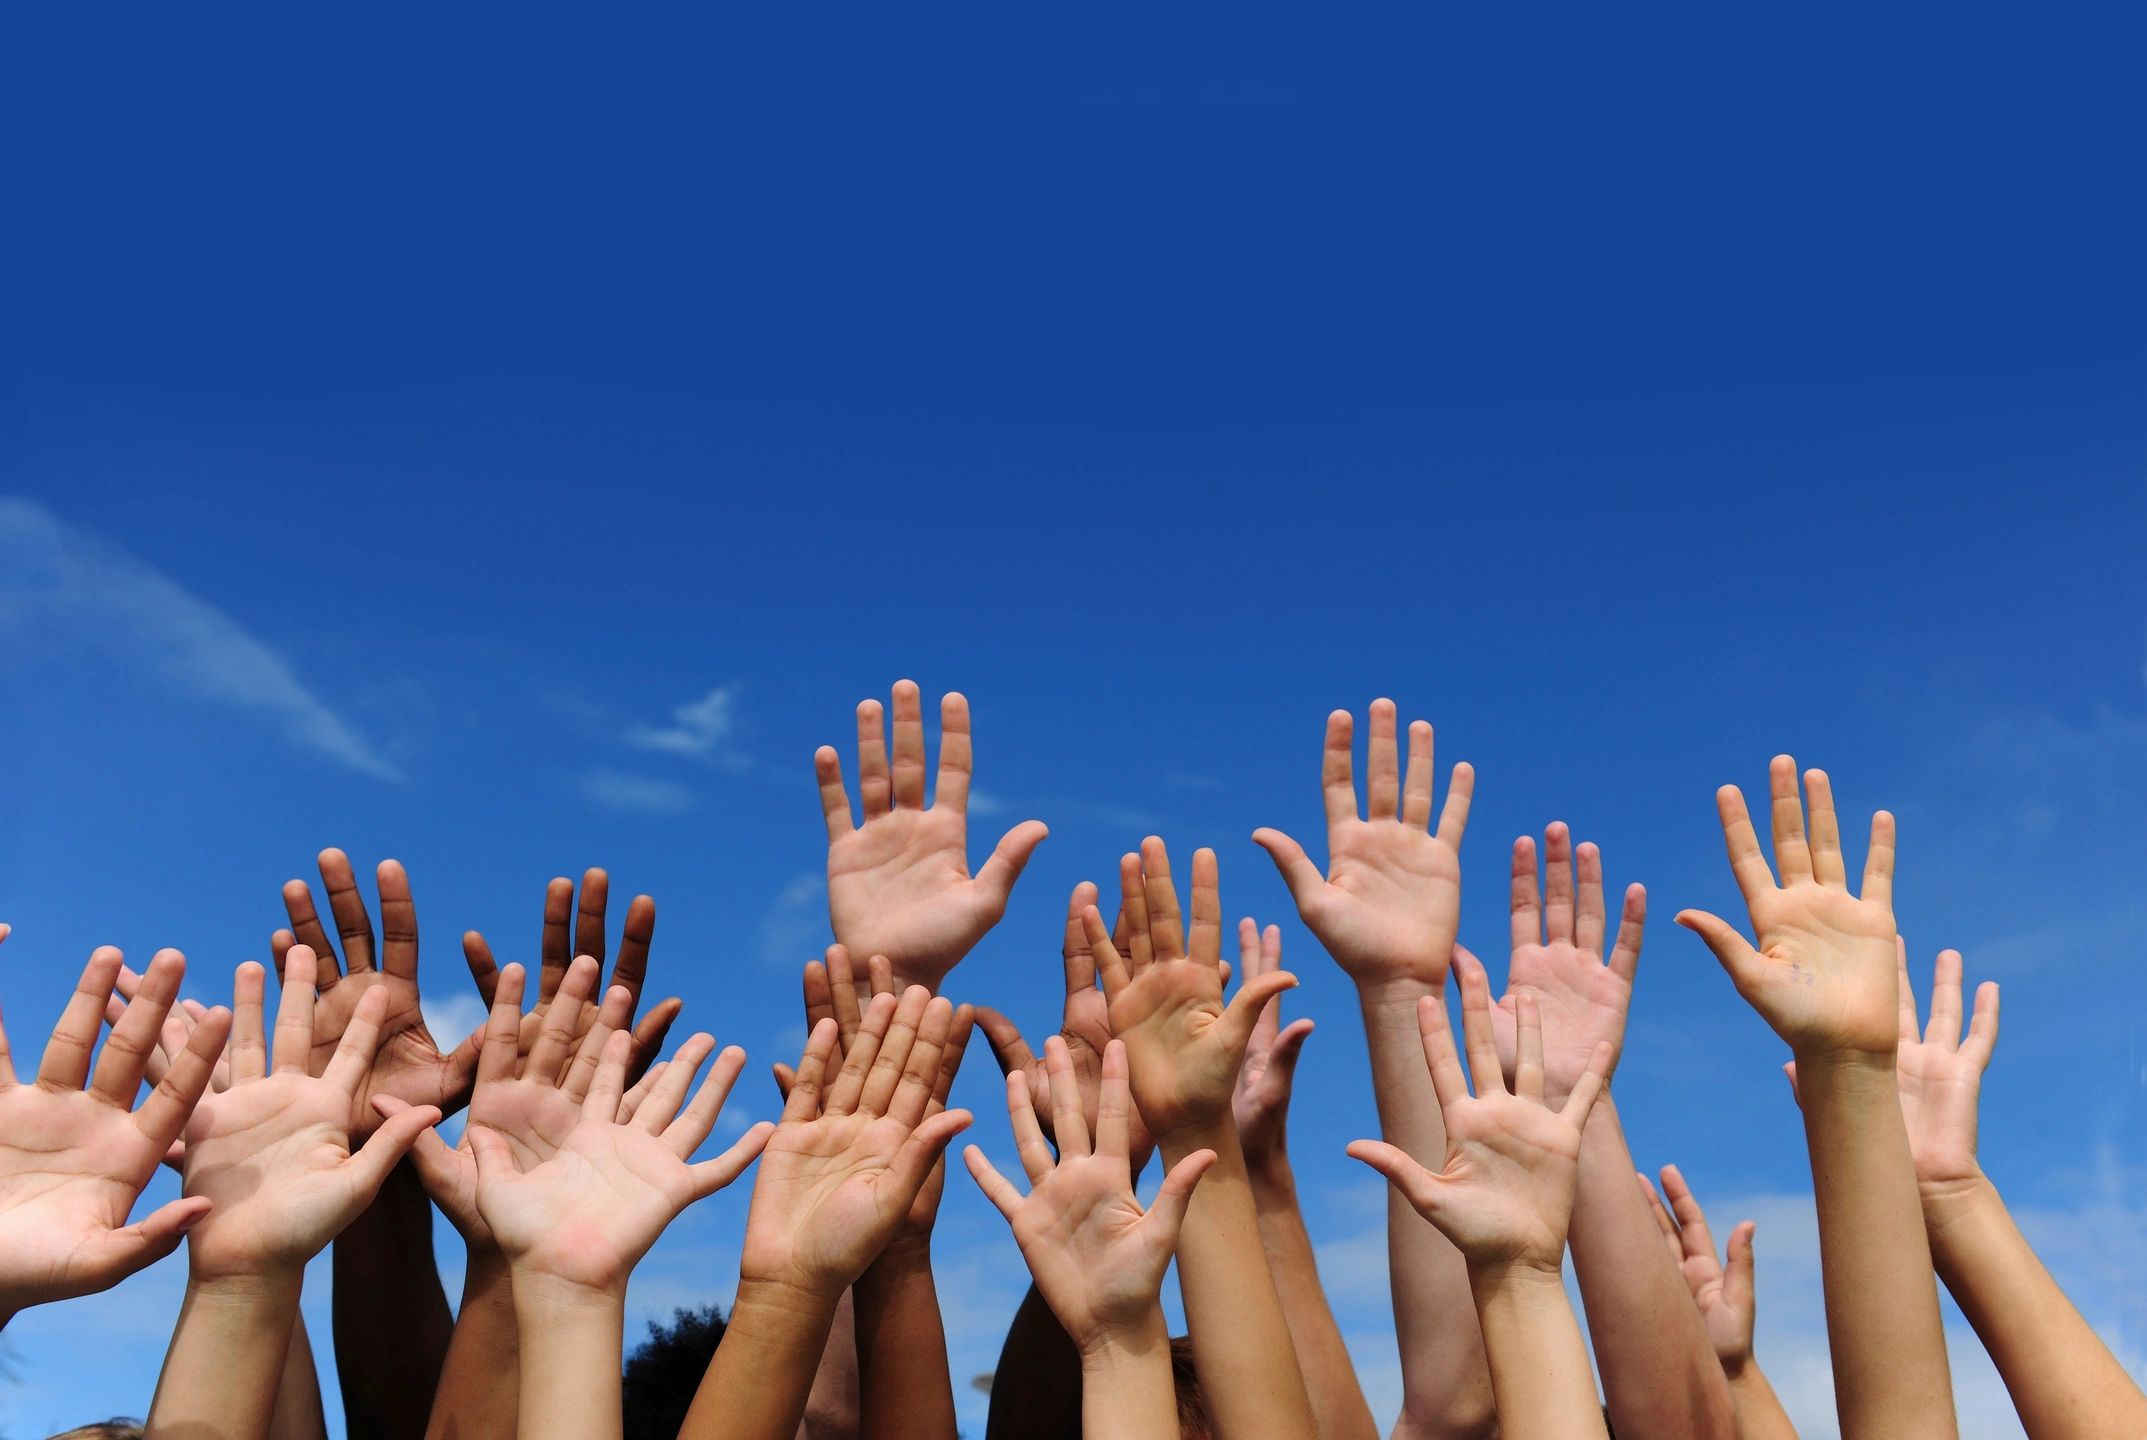 Raise Your Hand To Support Eliminating Racism,  & Promote Equality, Justice, & Human Rights for ALL!